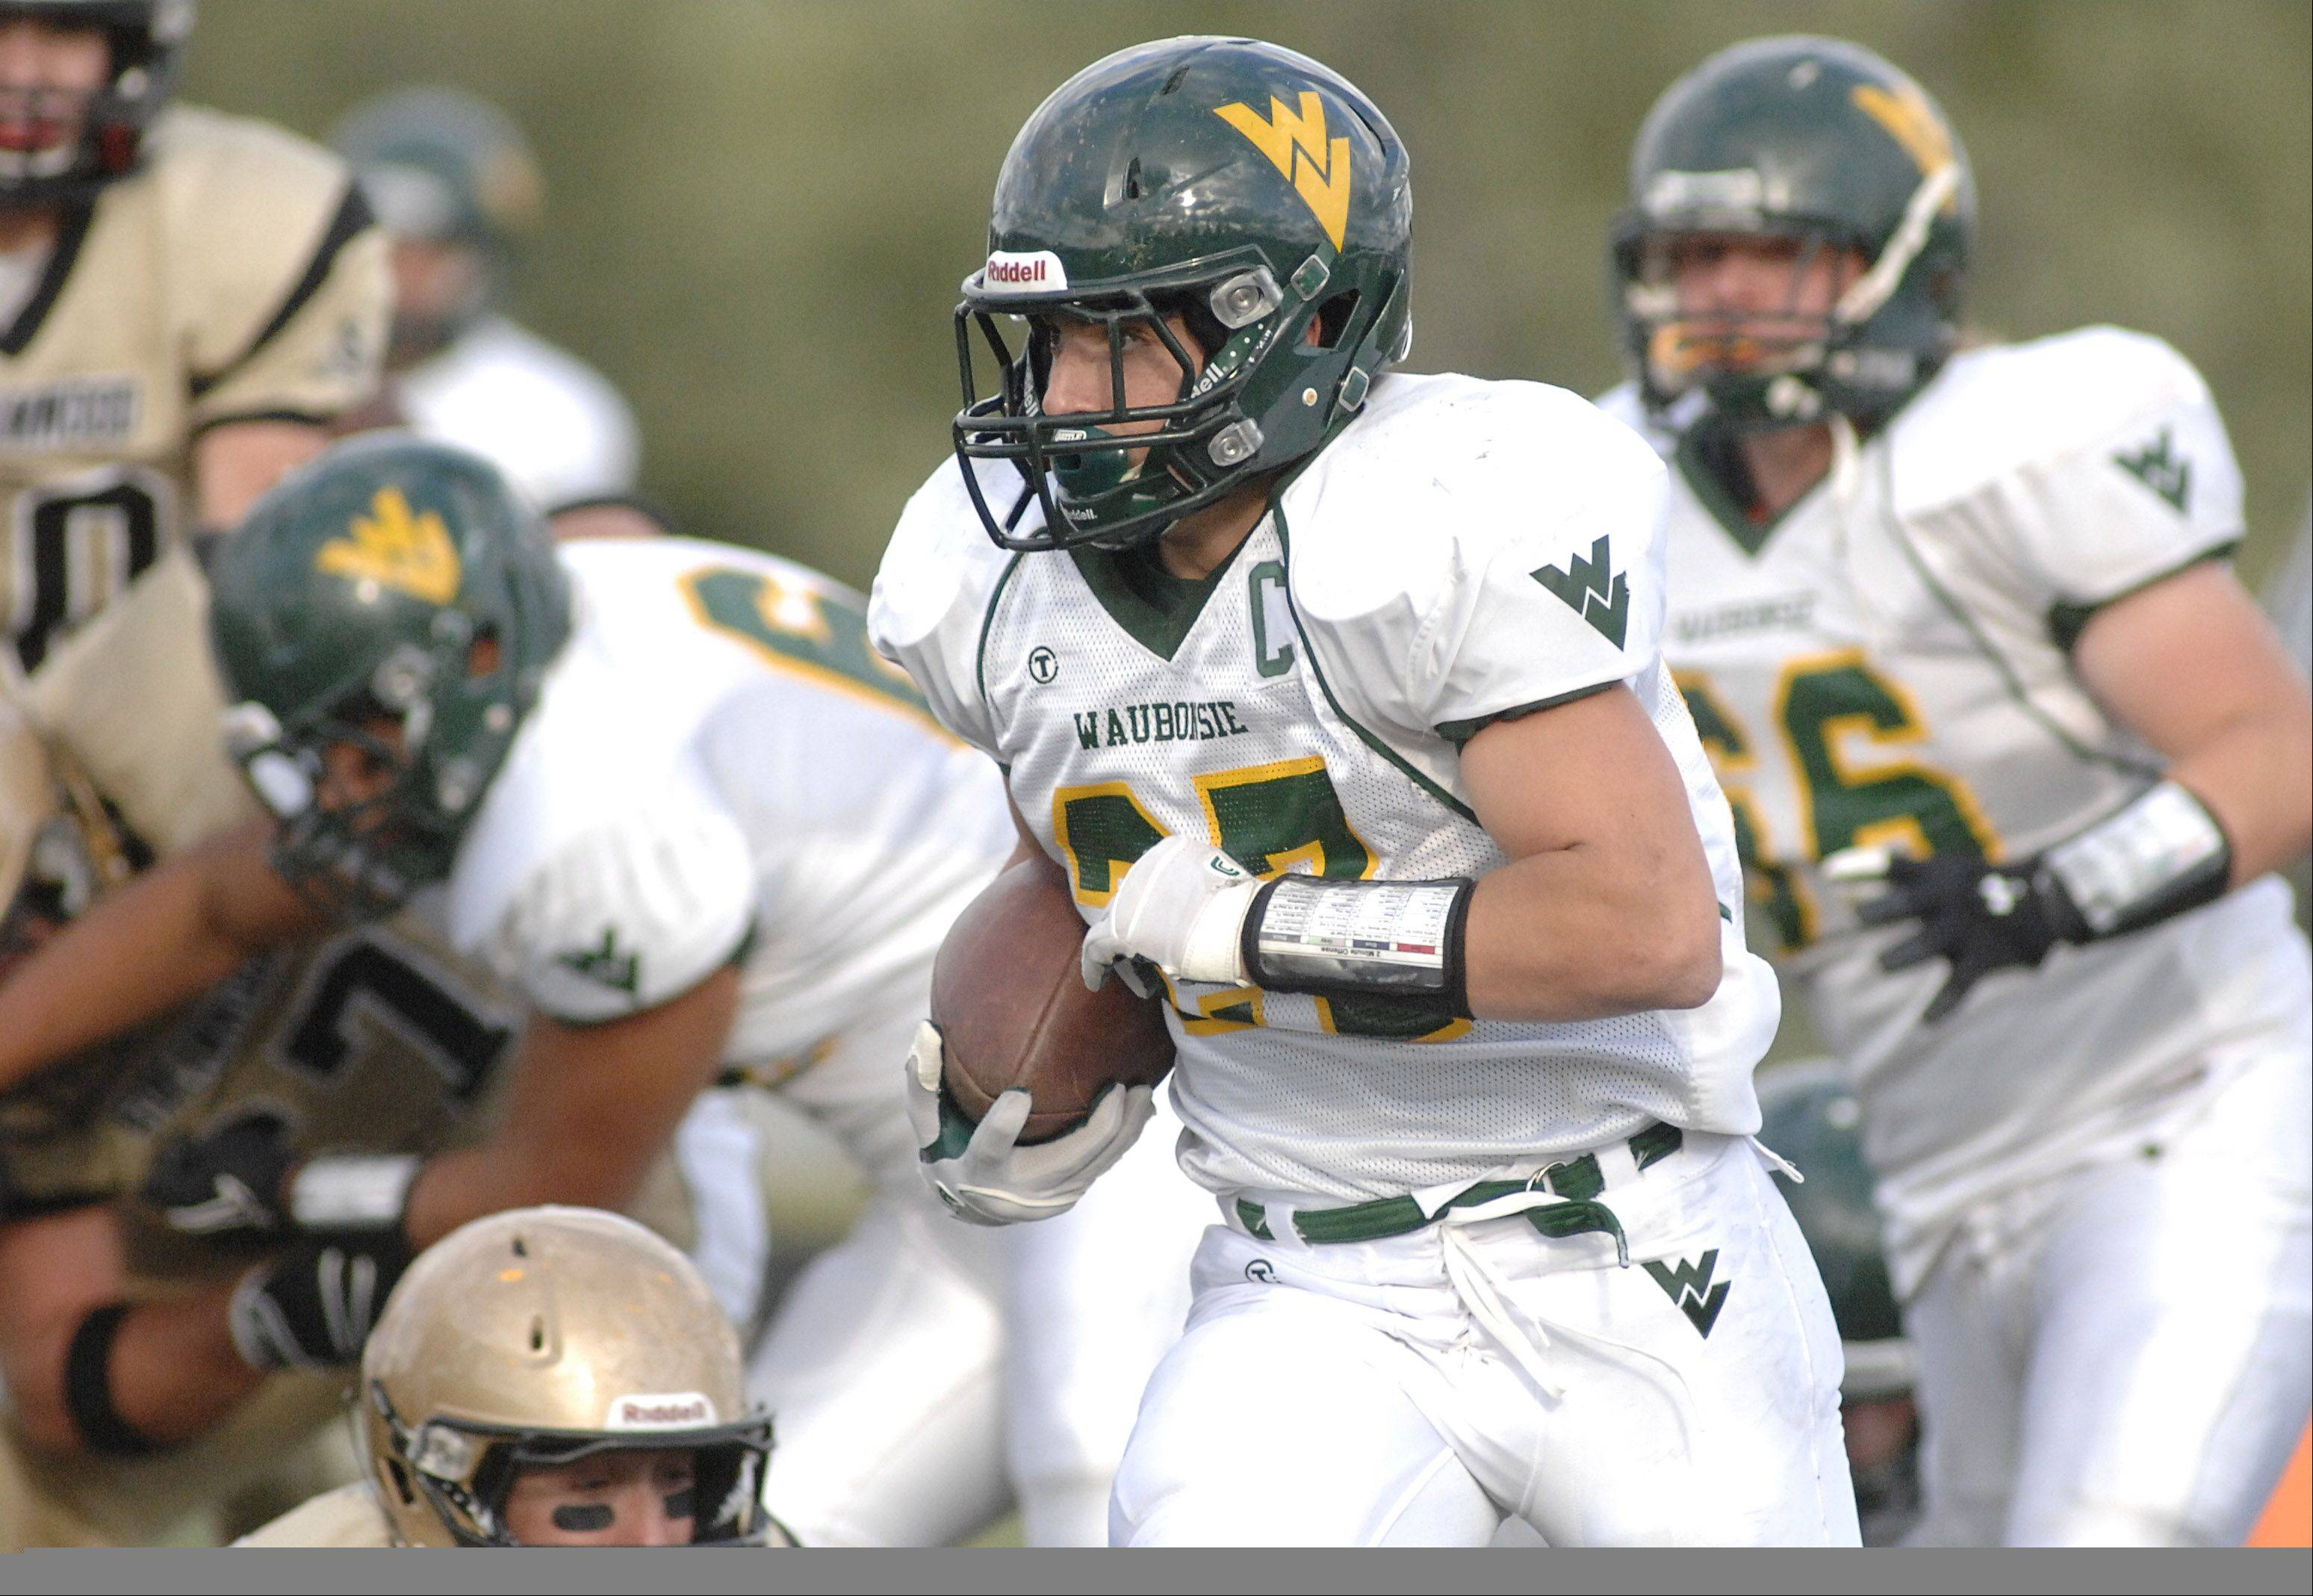 Waubonsie Valley's Austin Guido races down the field to score a touchdown in the second quarter vs Streamwood on Saturday, September 8.